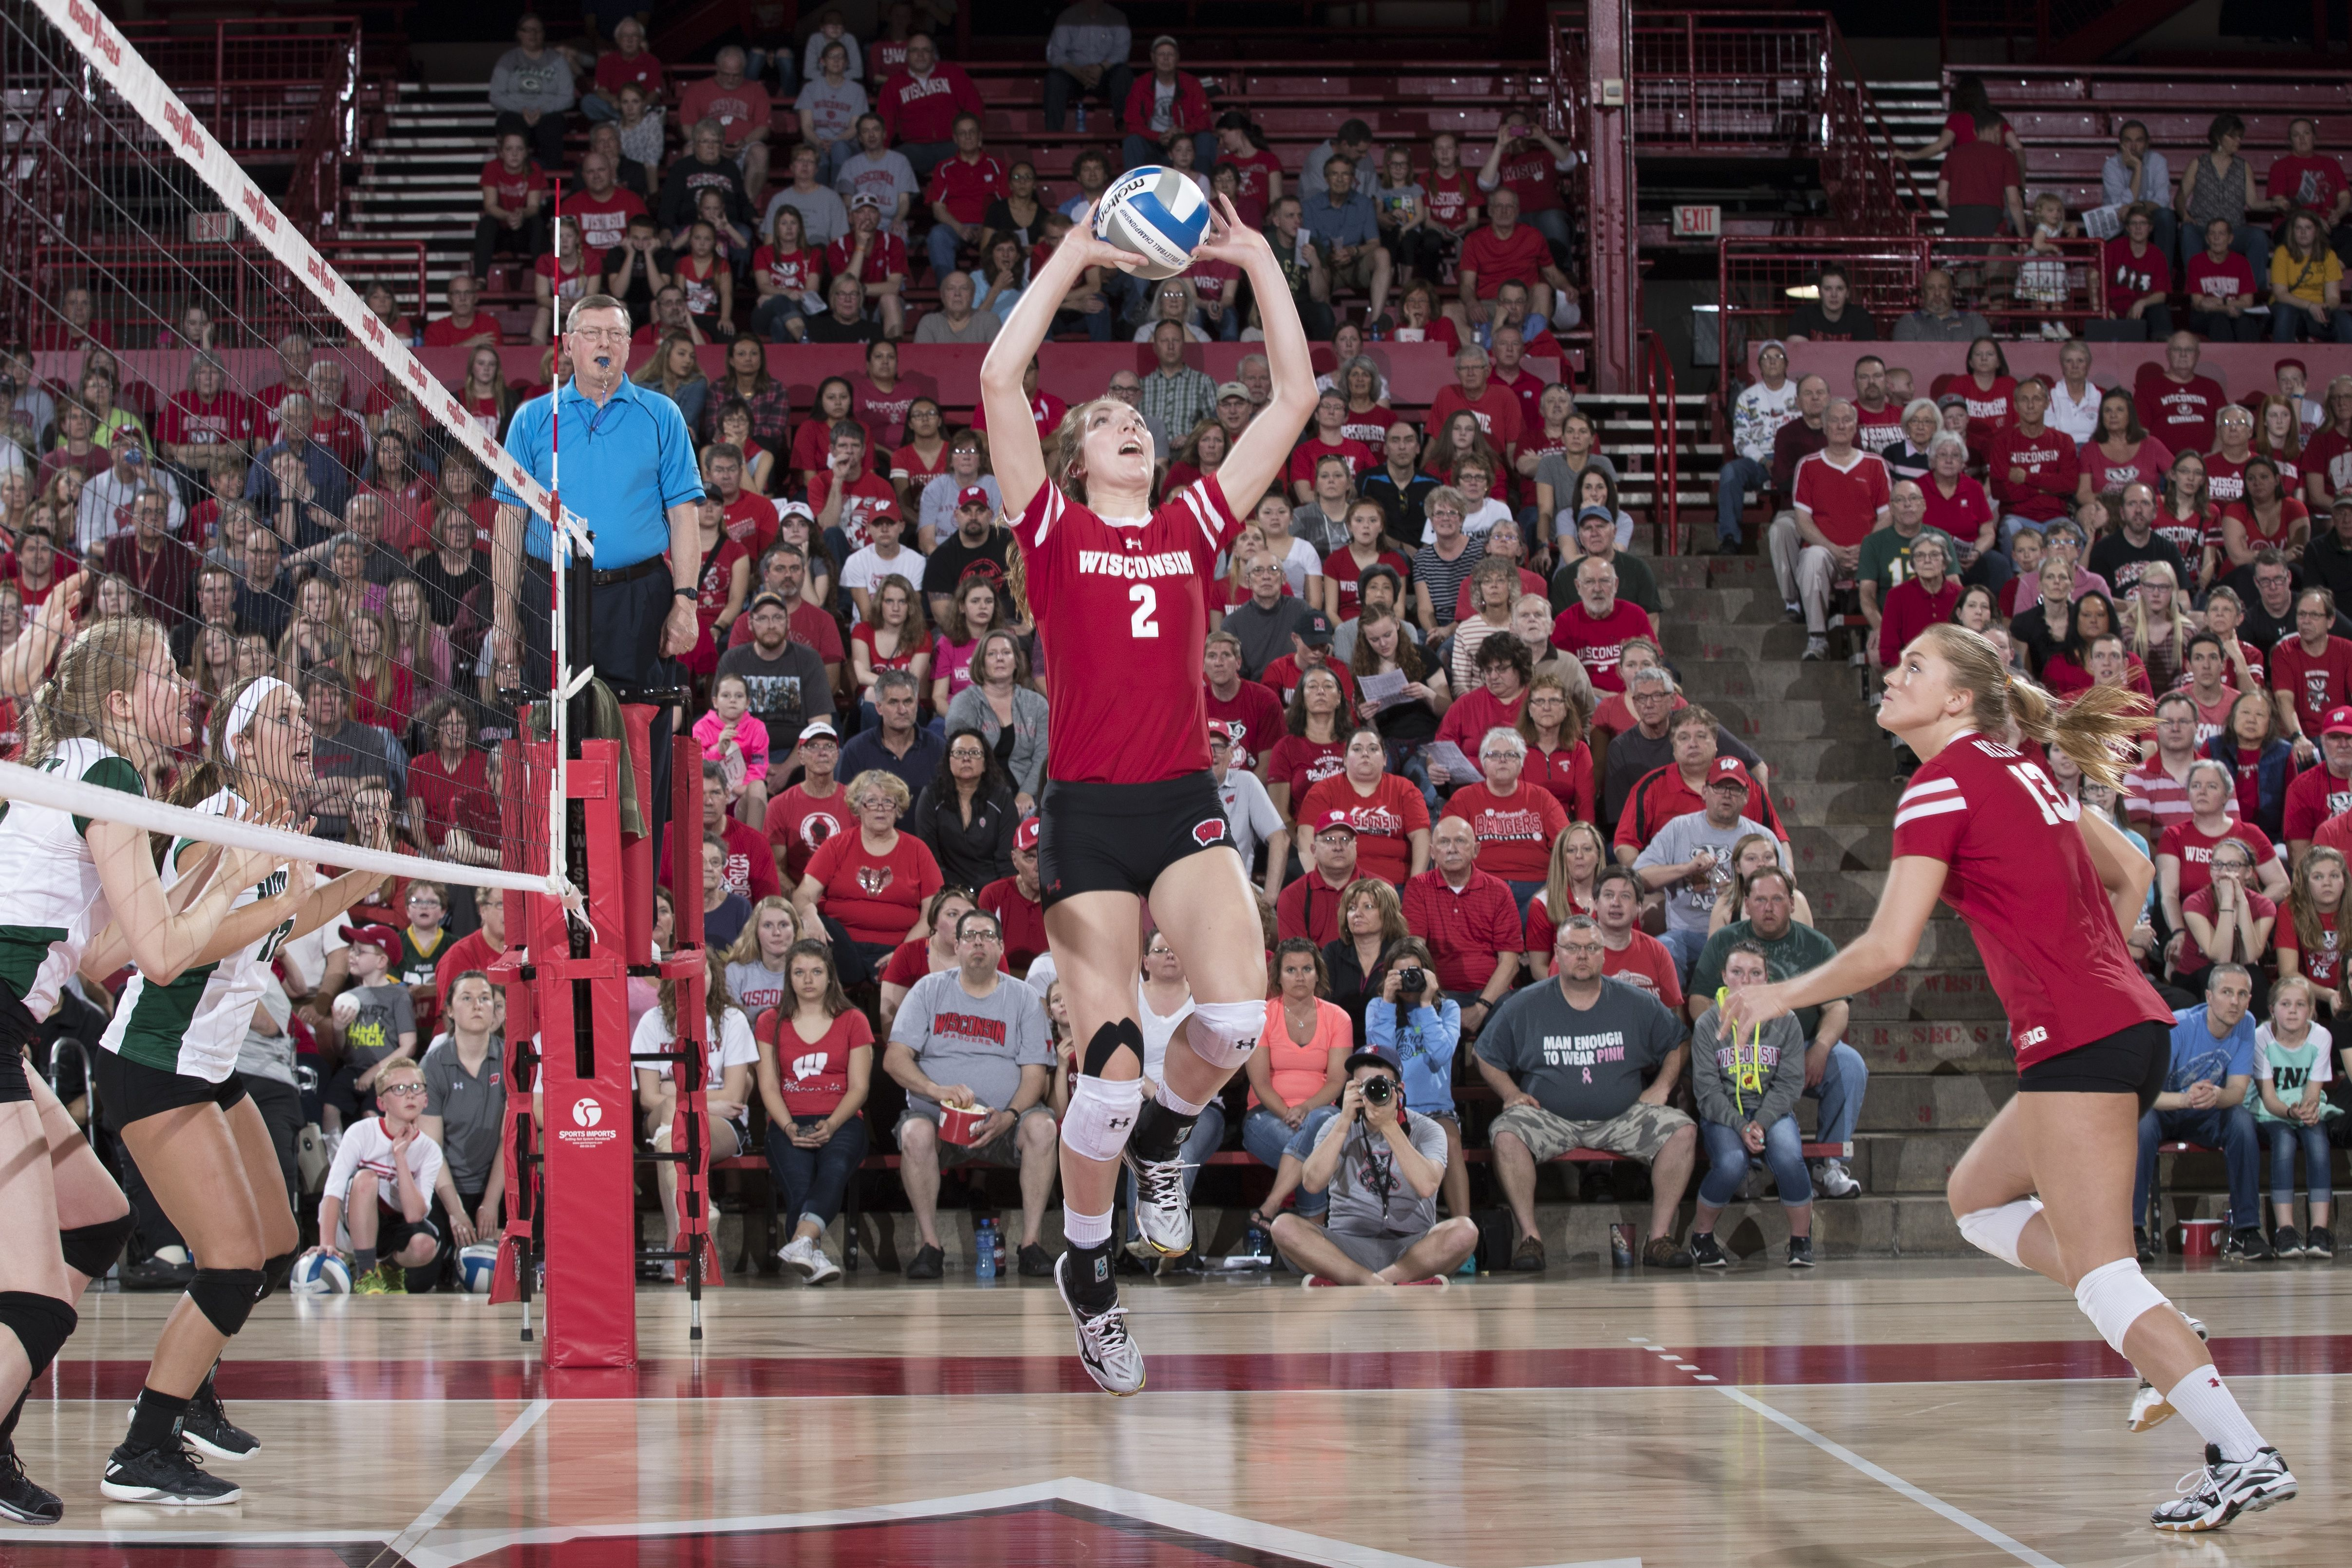 Texas Wisconsin Ucla Top Volleyballmag Com Top Recruiting Classes Volleyball News Tops Basketball Court